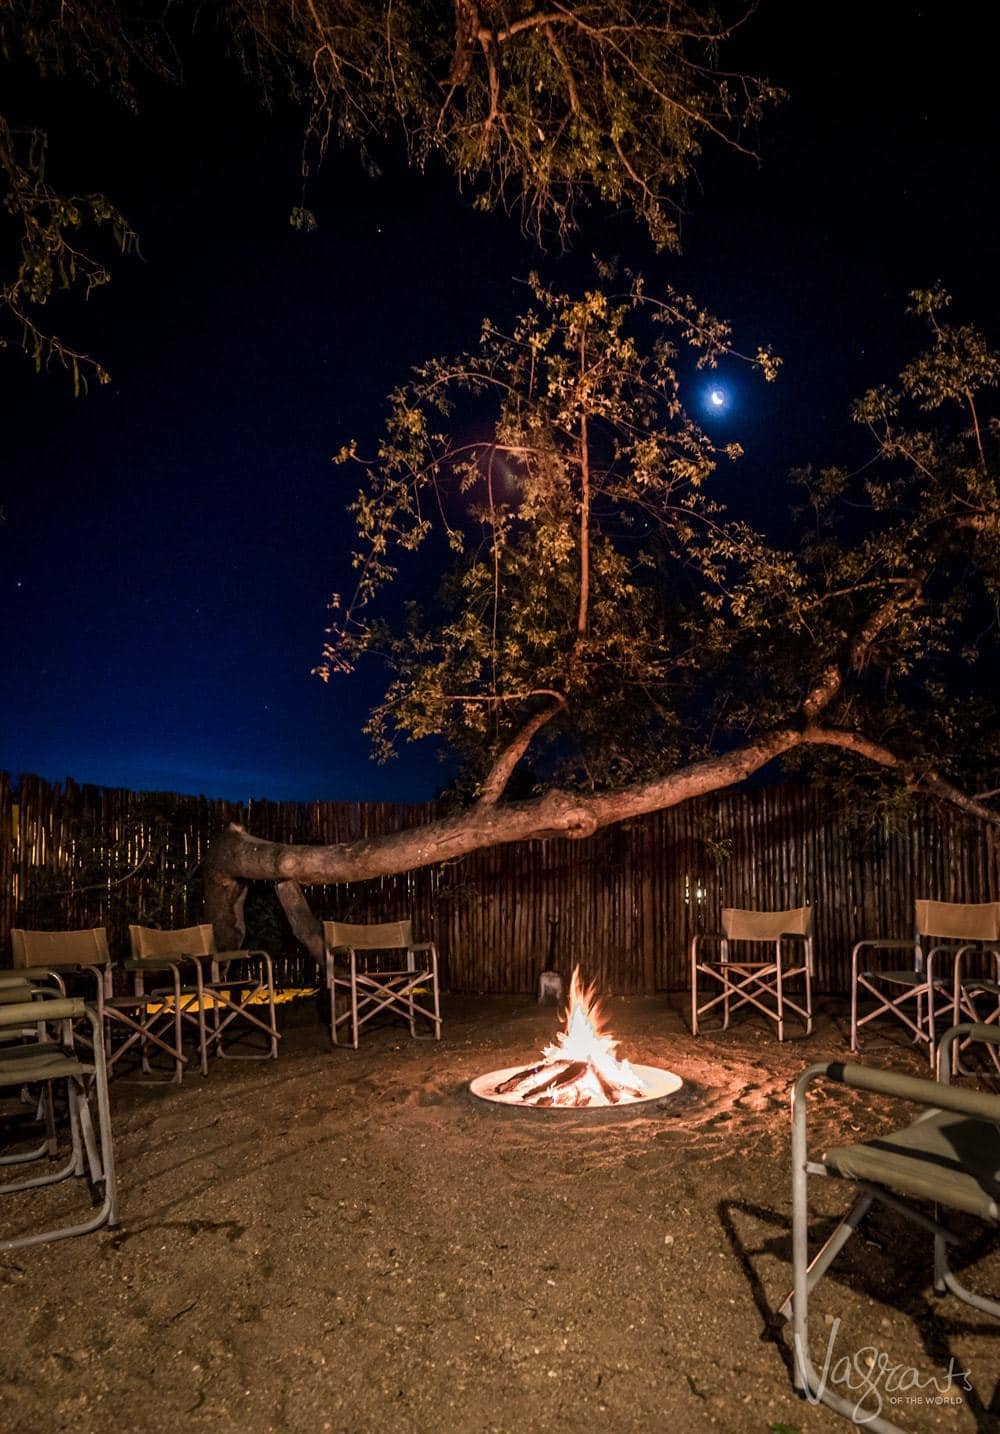 Africa on Foot offers an affordable South African wildlife safari experience.